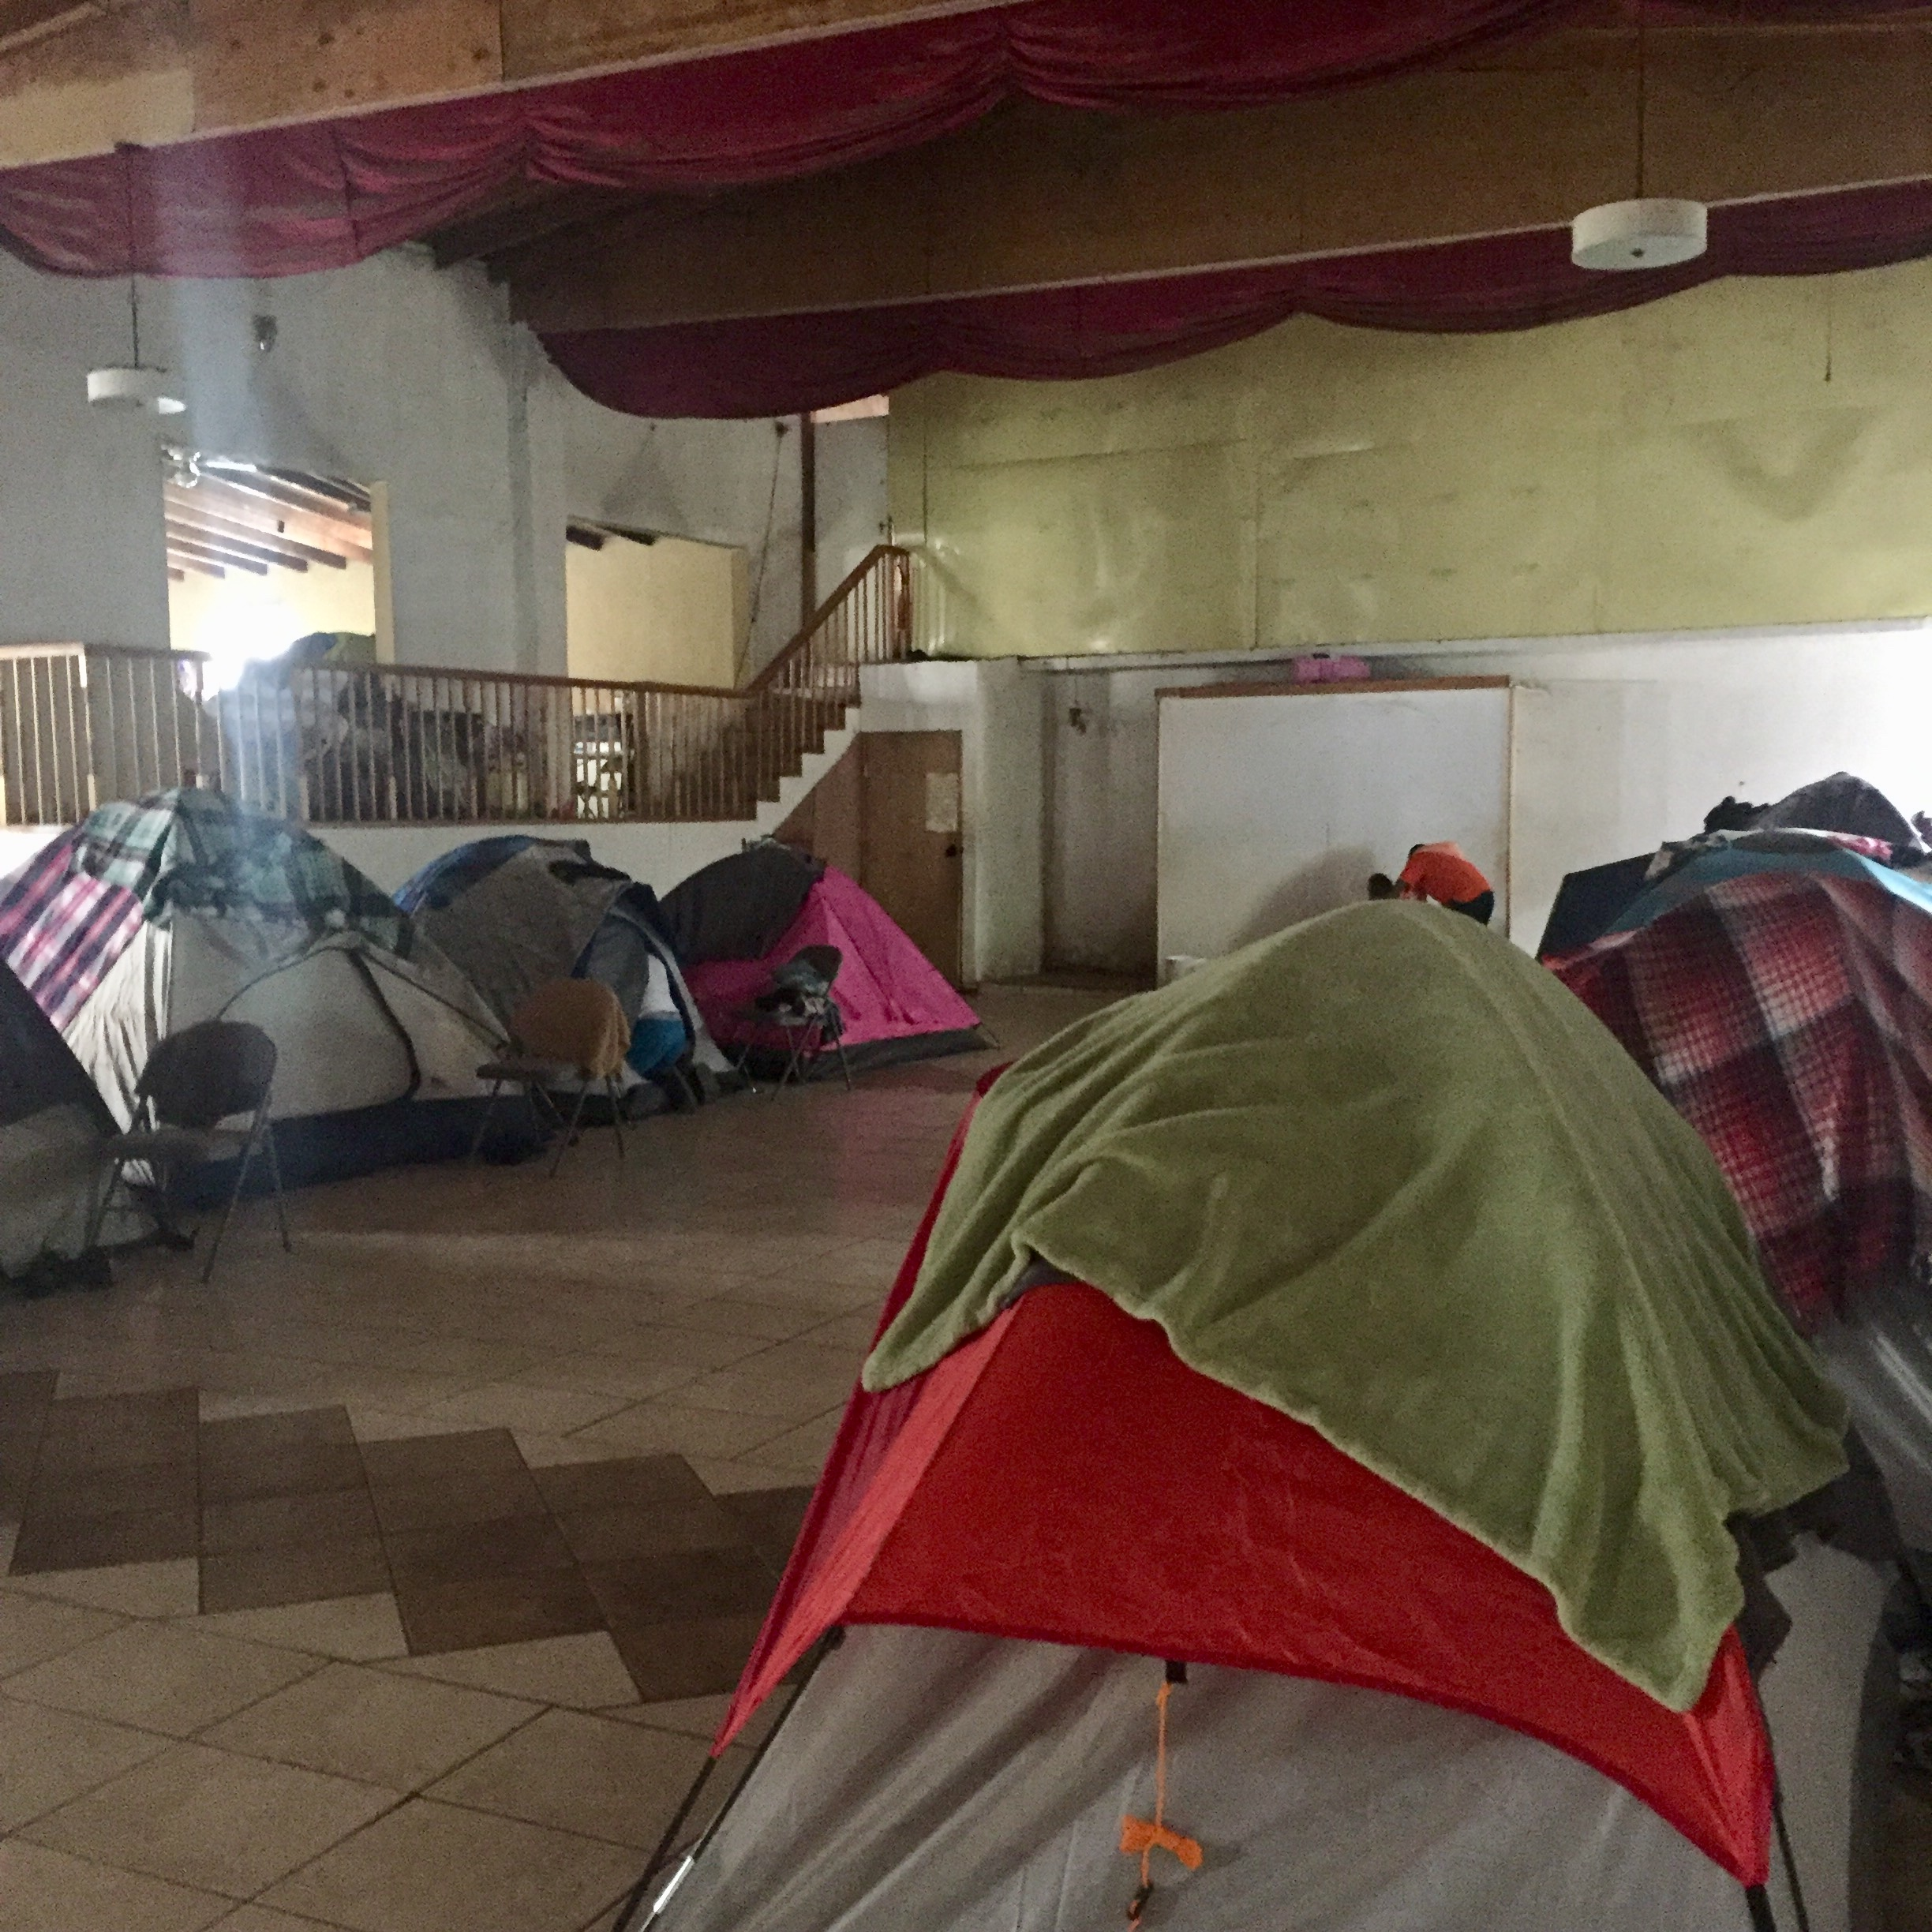 Tents provide individual family shelter inside a church.  Tents are set up throughout the church